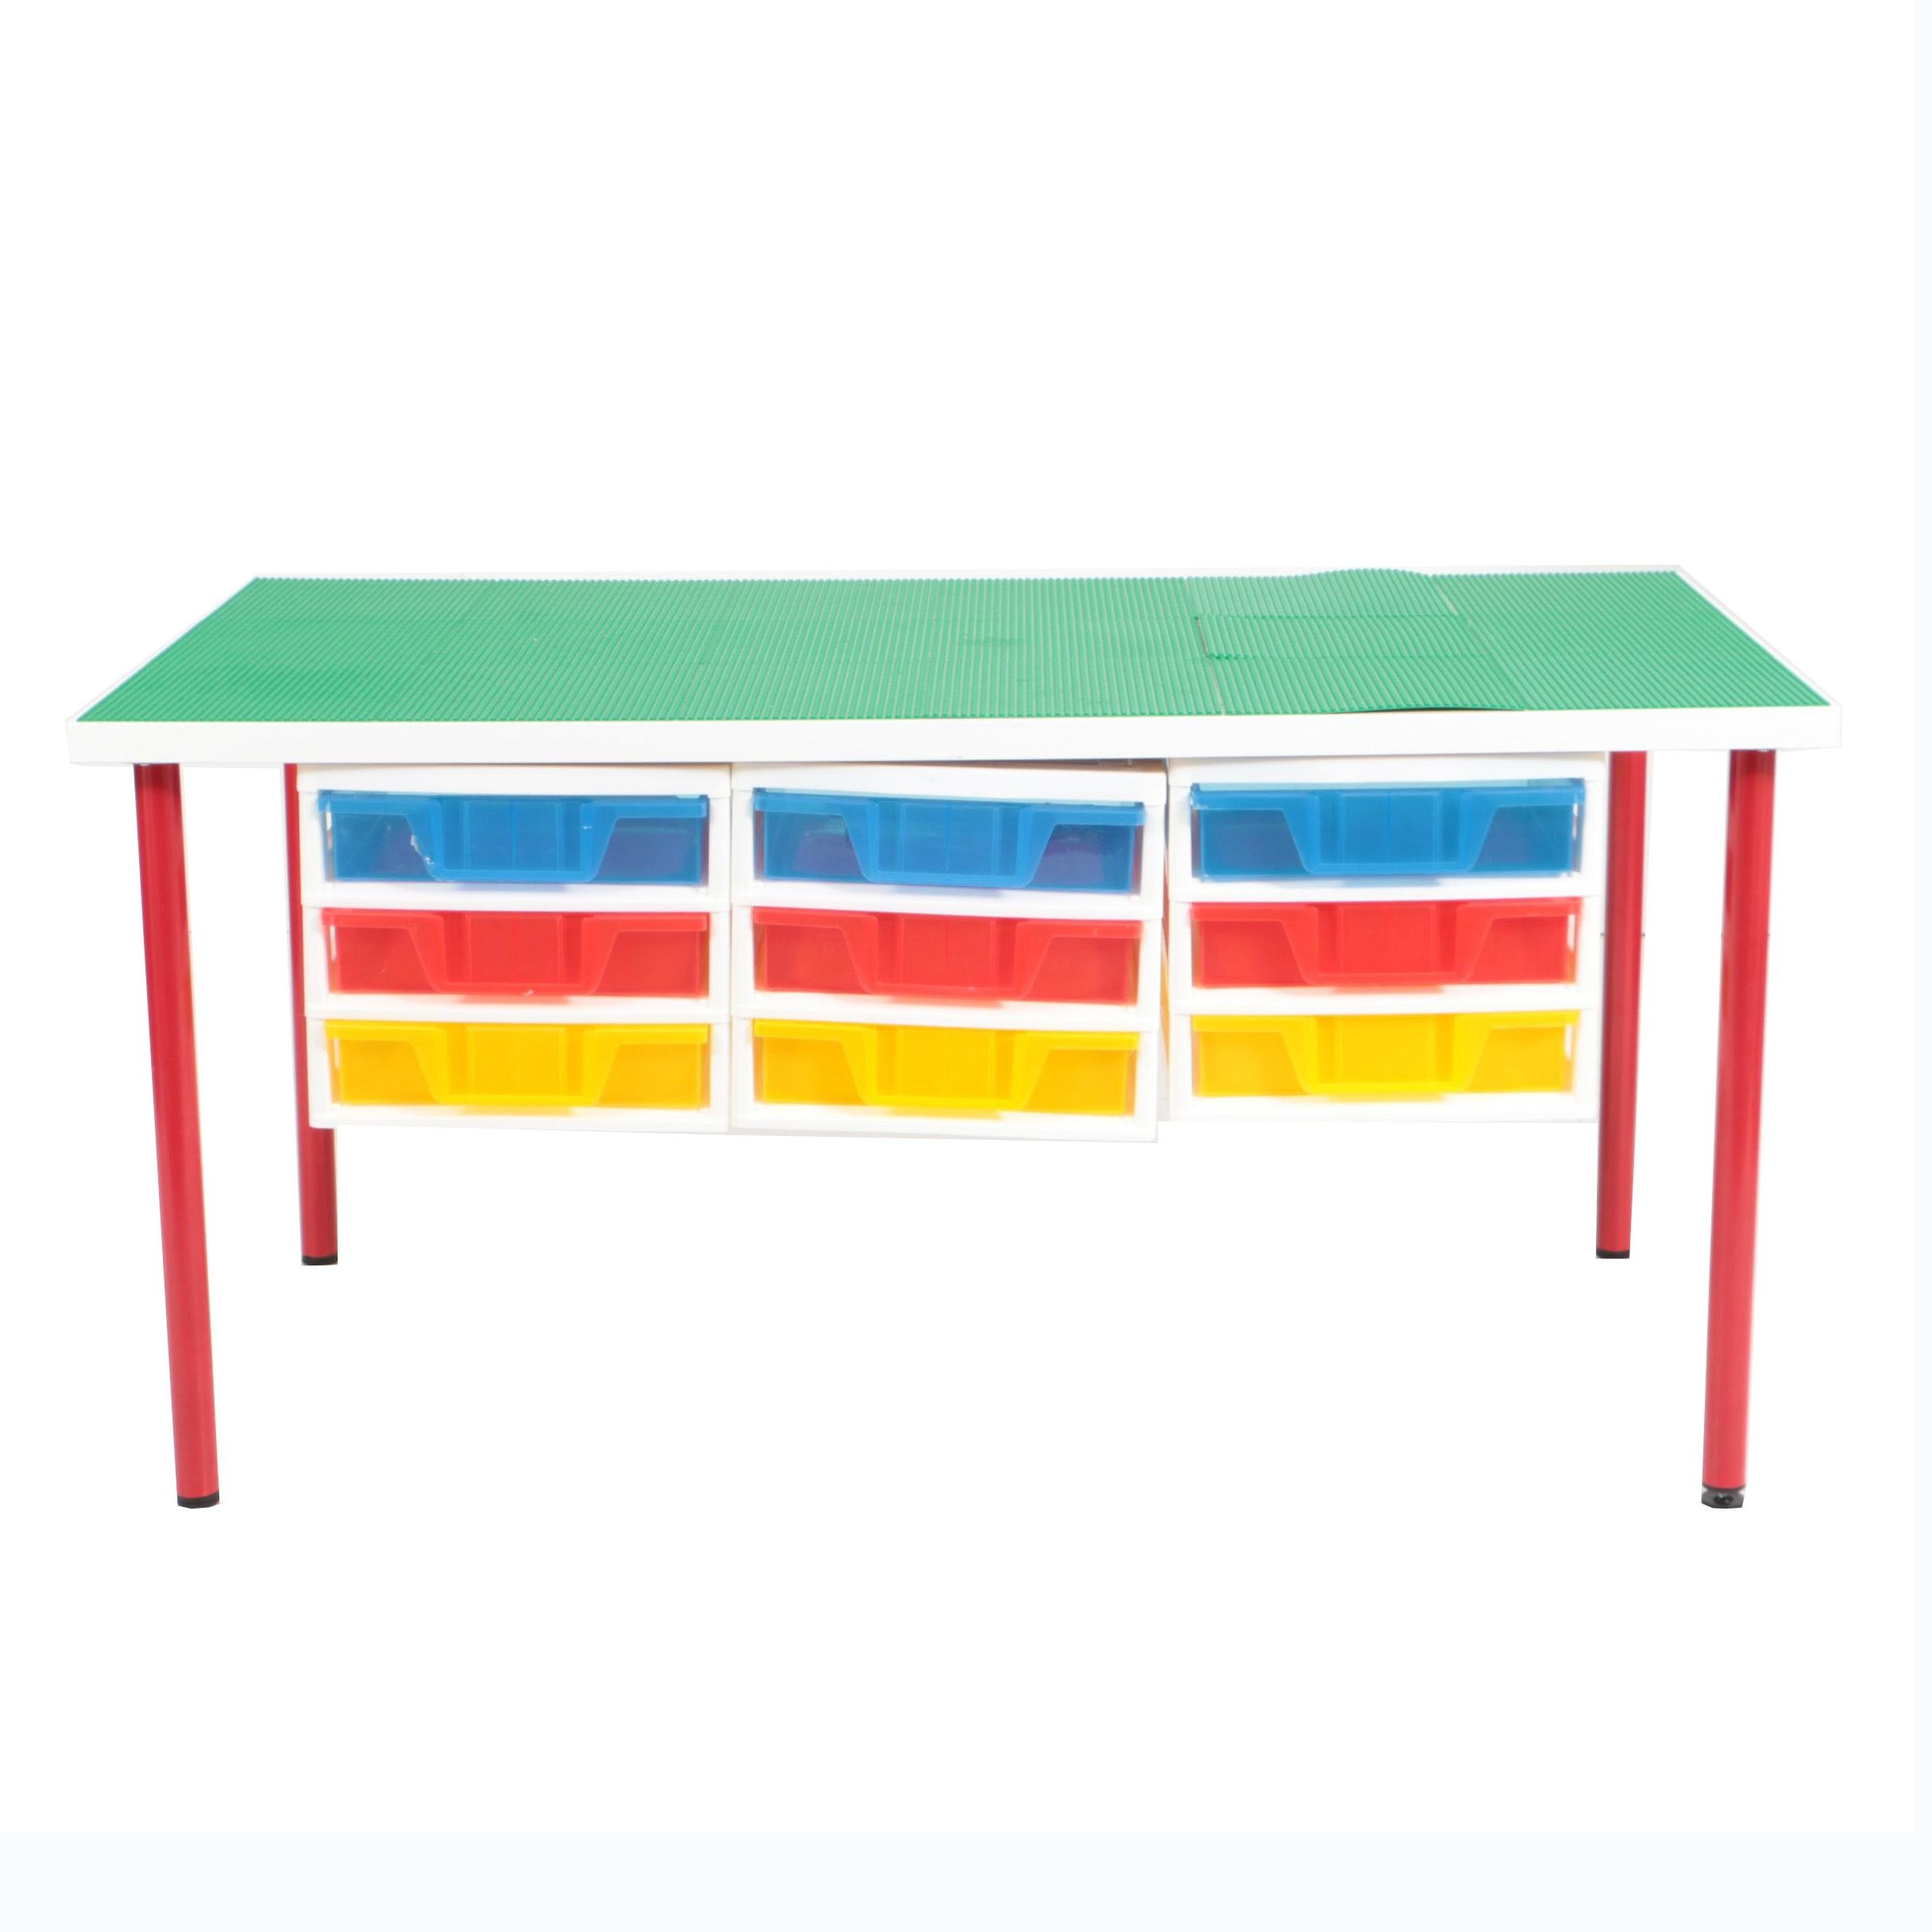 Lego Style Construction and Building Toy Table